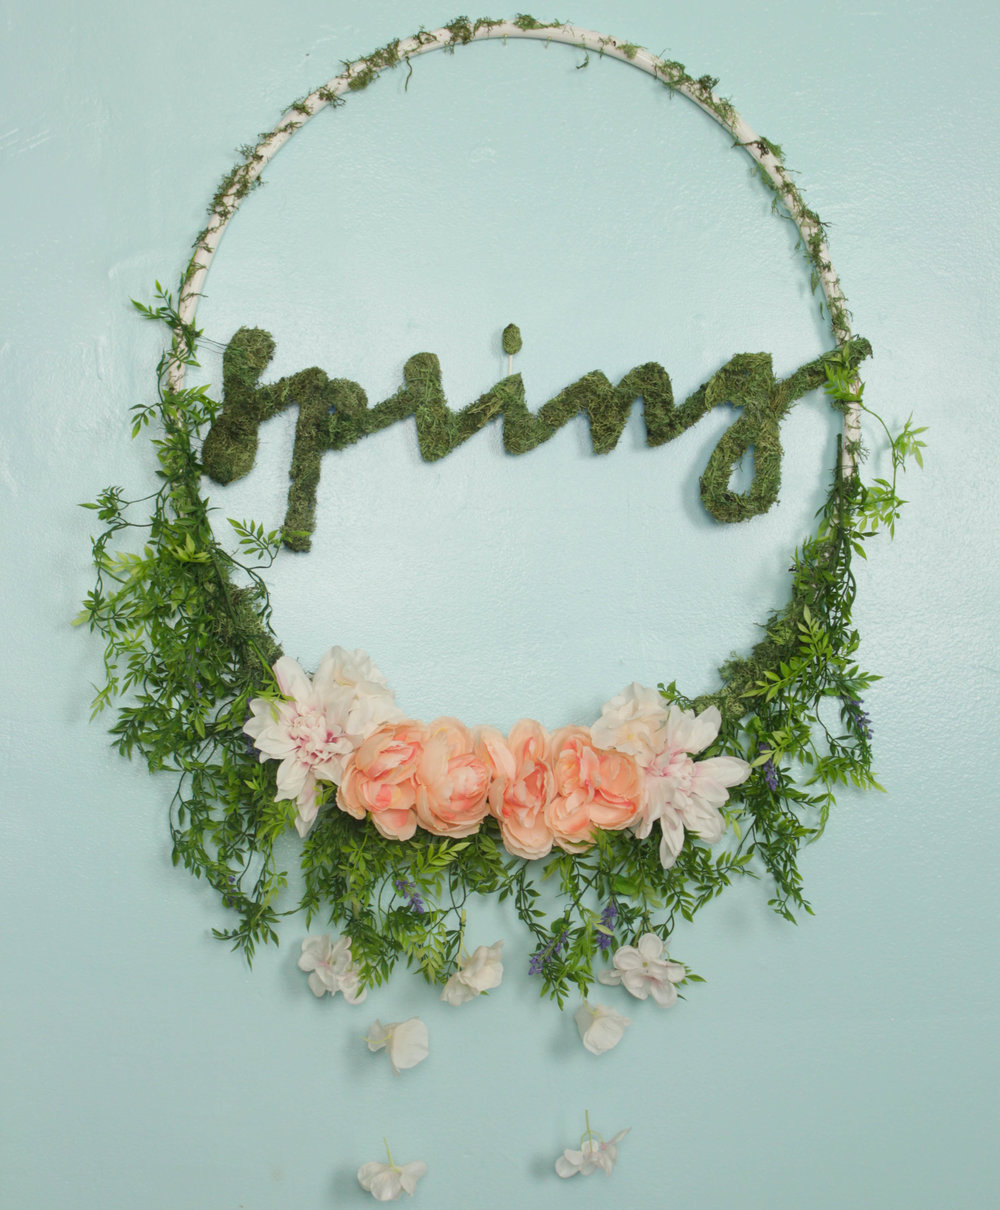 DIY Spring Jumbo Wreath (COMING SOON)